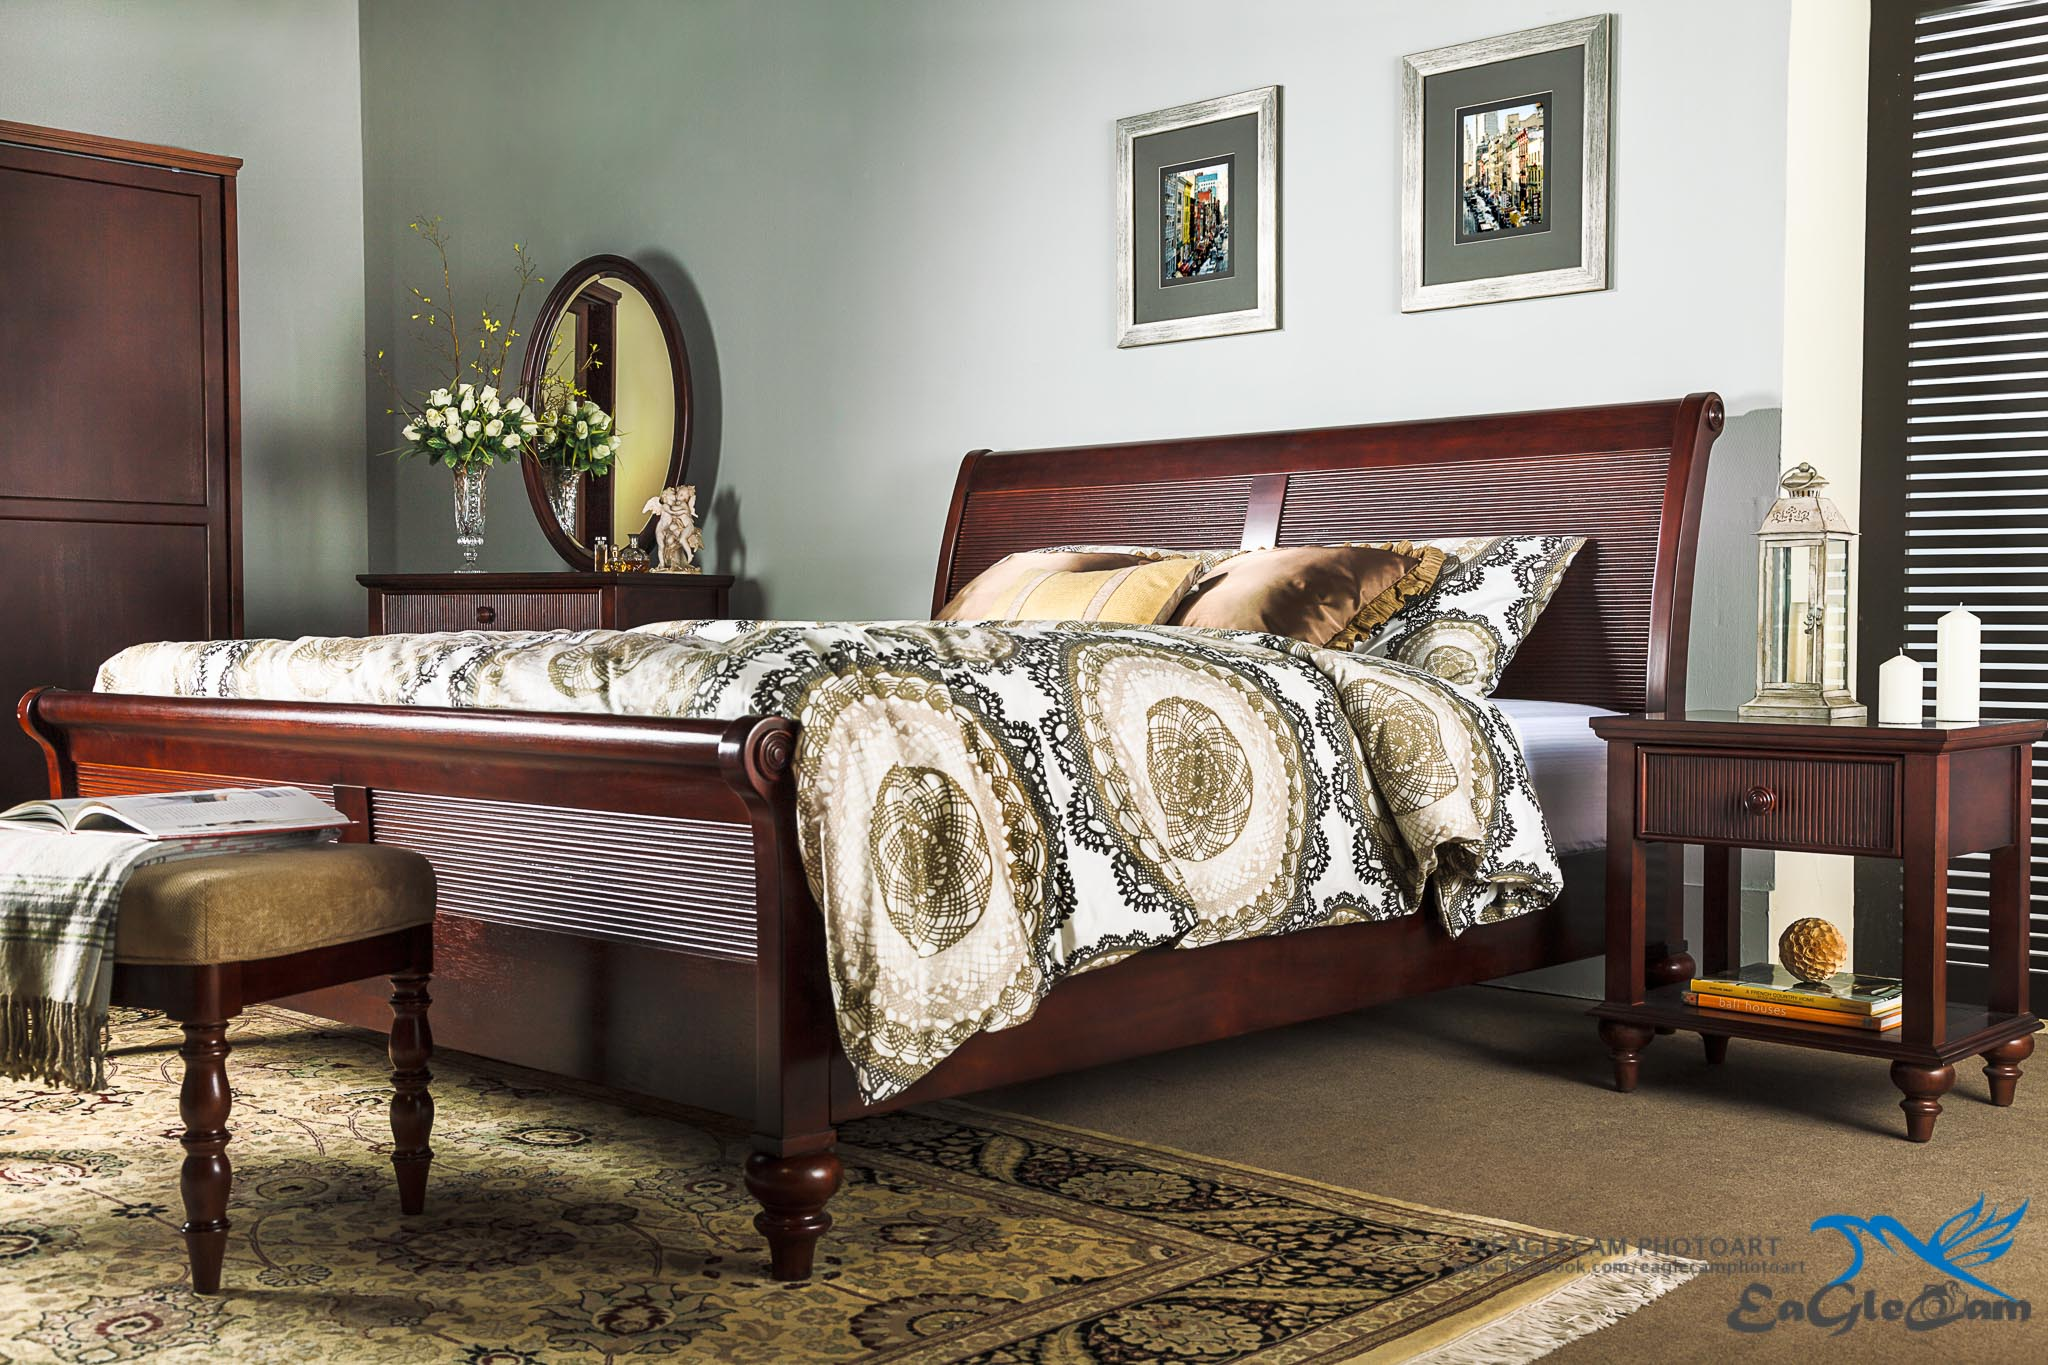 Furniture Photography_19